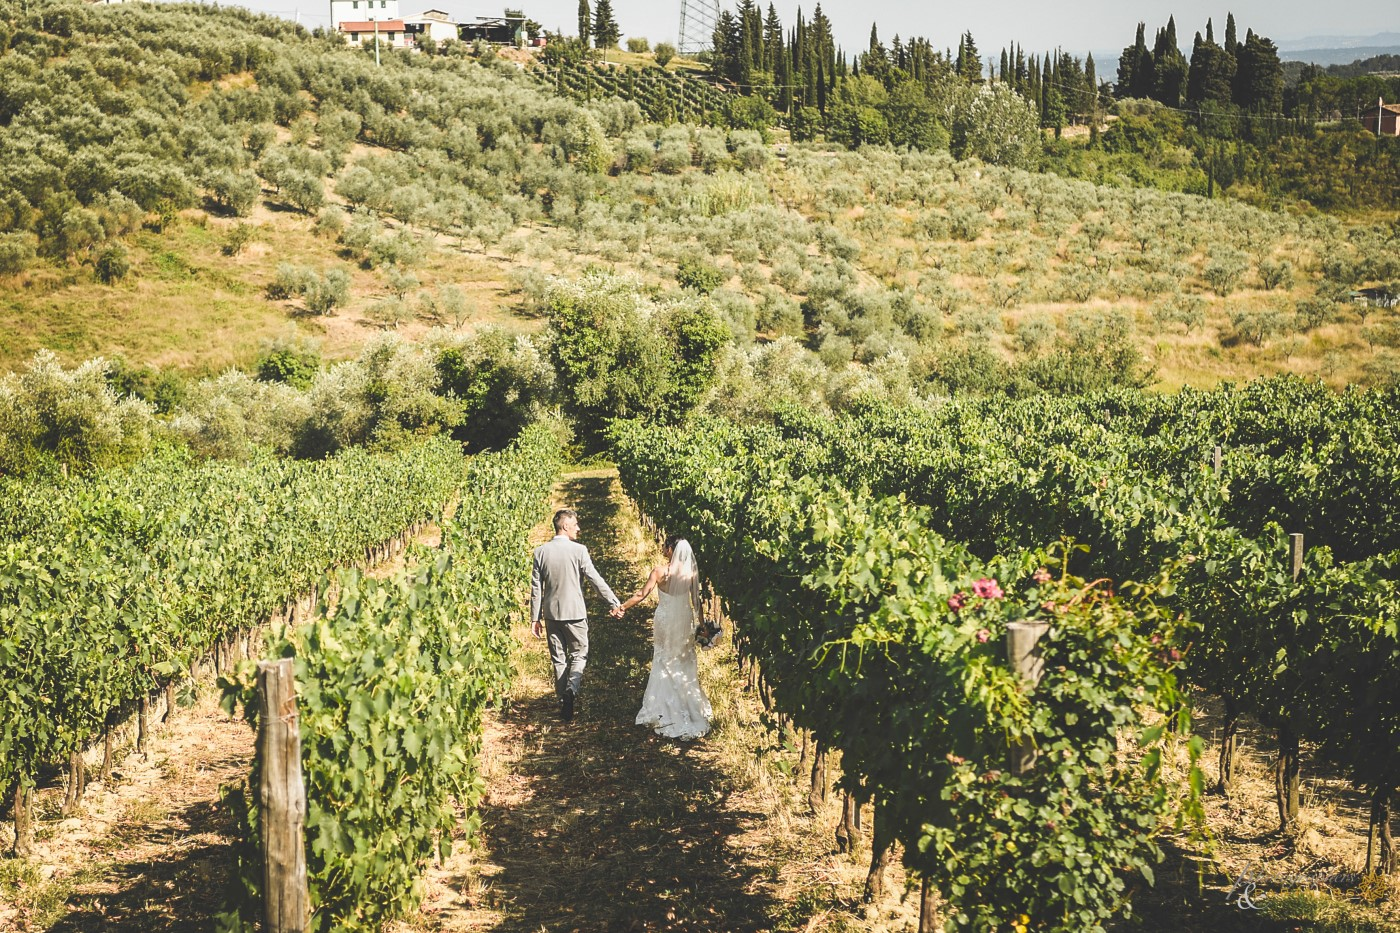 🍃 Walking in the vineyard 🍃